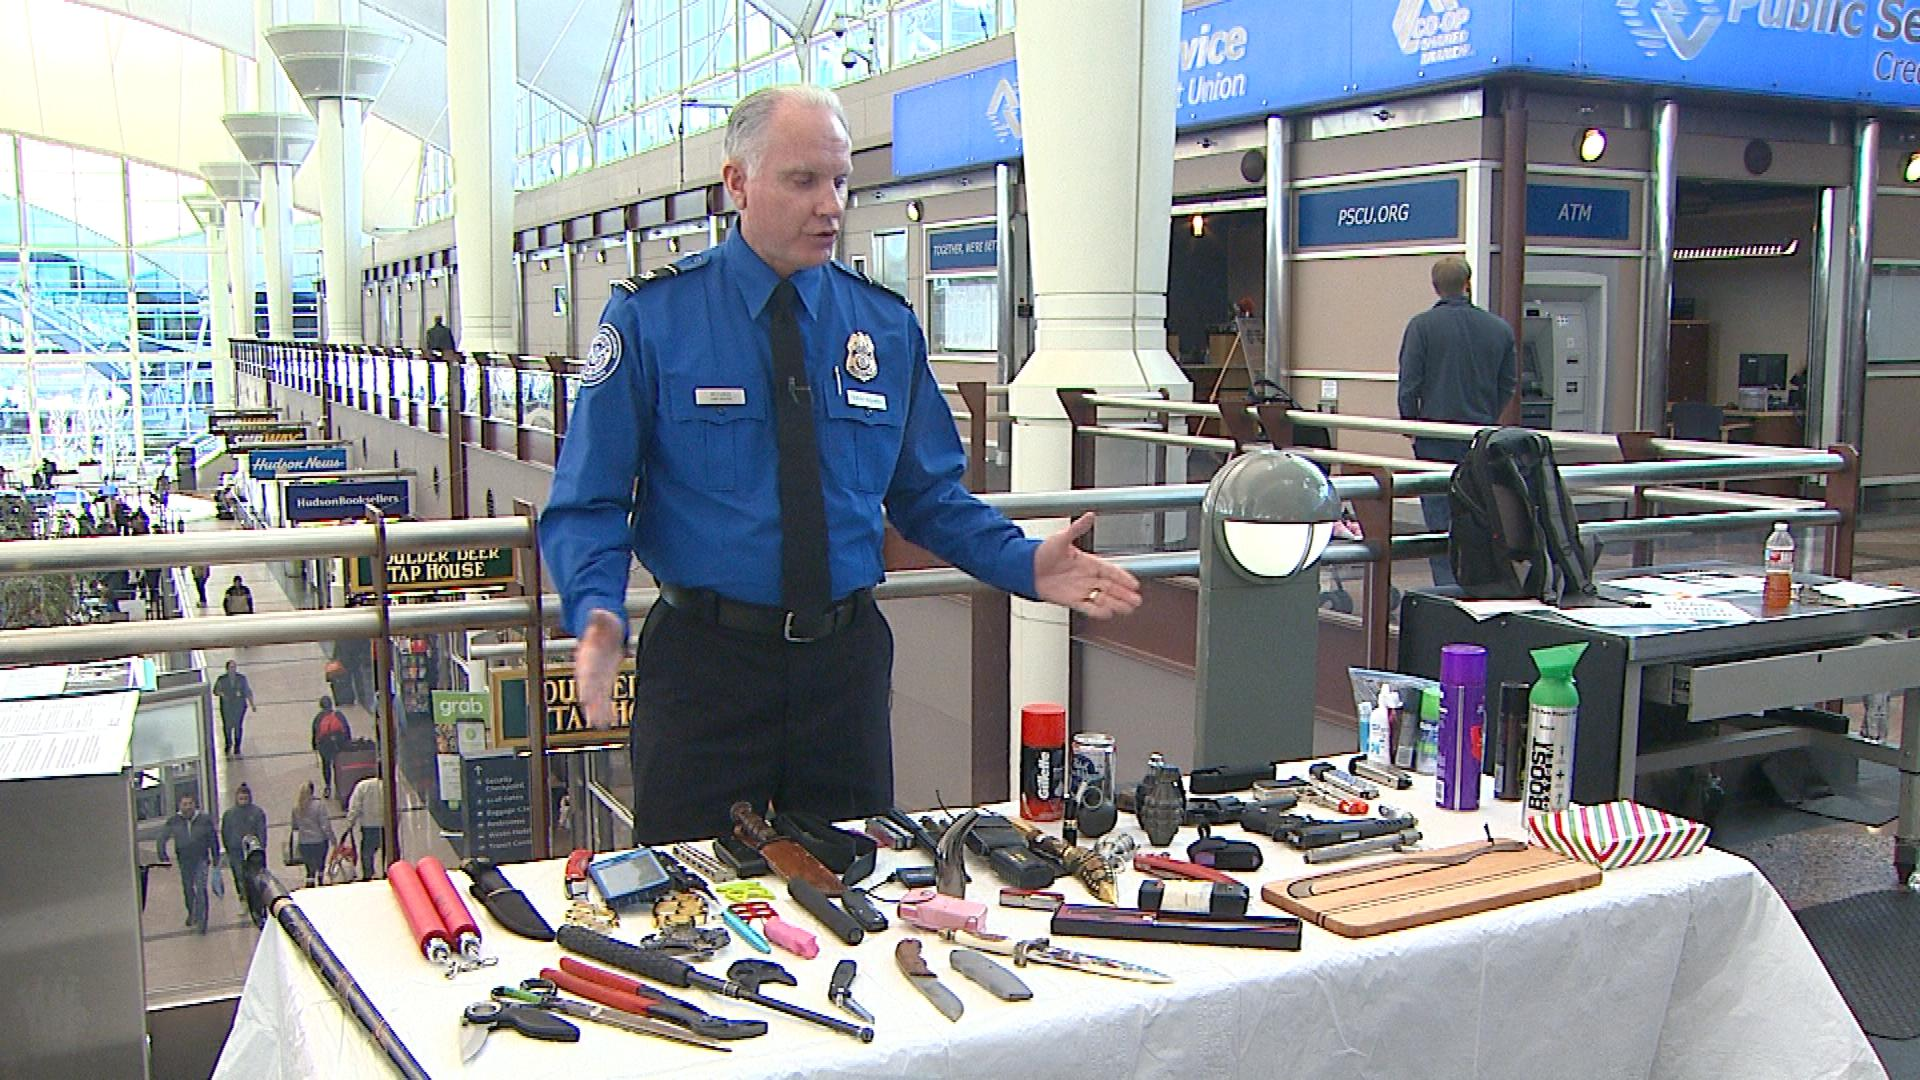 Harold McCurdy with TSA on Monday (credit: CBS)